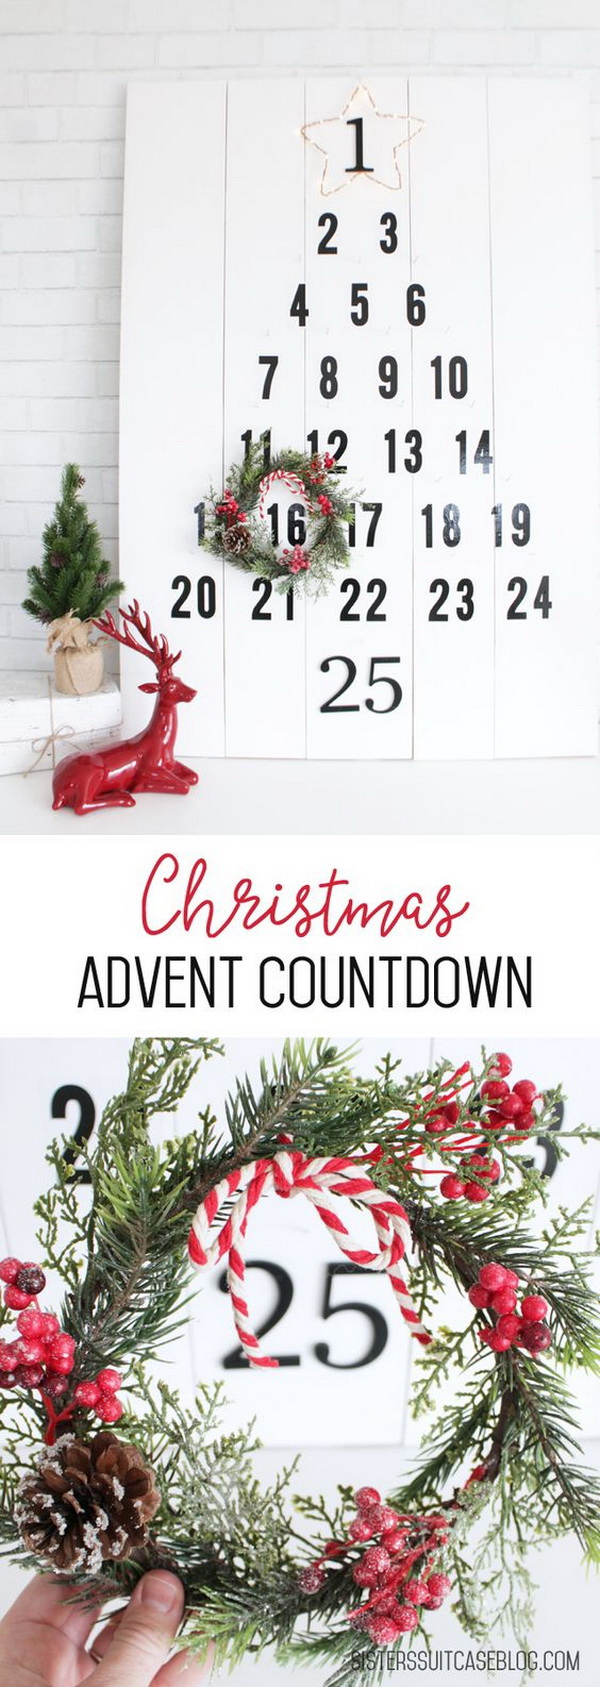 DIY Christmas Tree Advent Countdown. This DIY advent calendar is the cutest way to pass the days until Christmas in style.